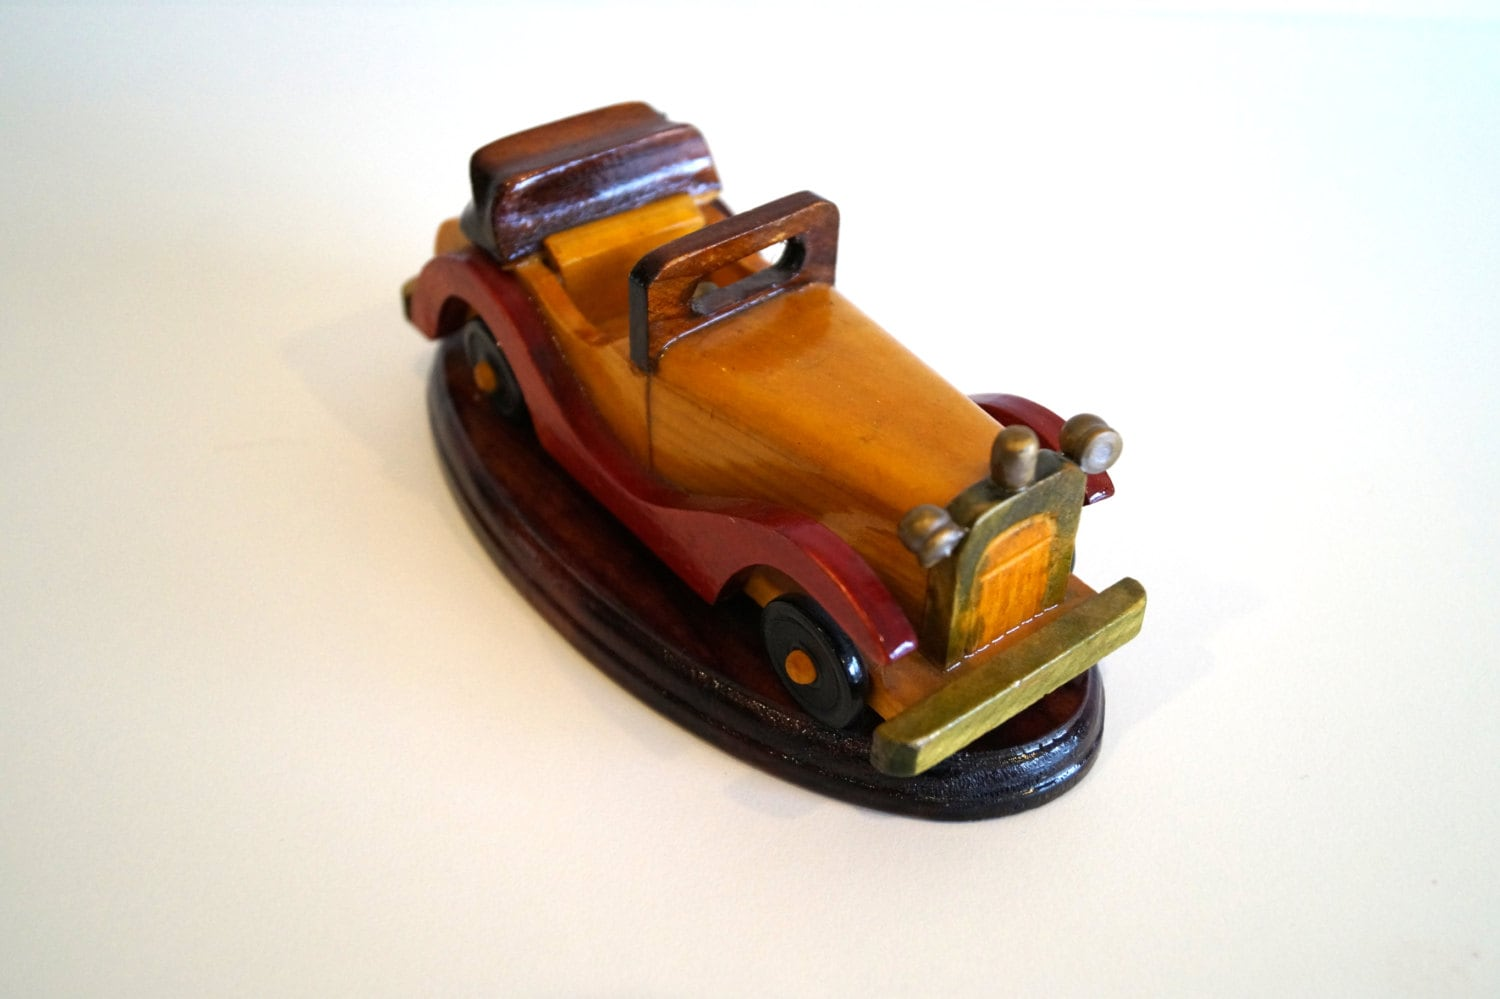 Car model vintage car wooden car toy Wood Souvenir car